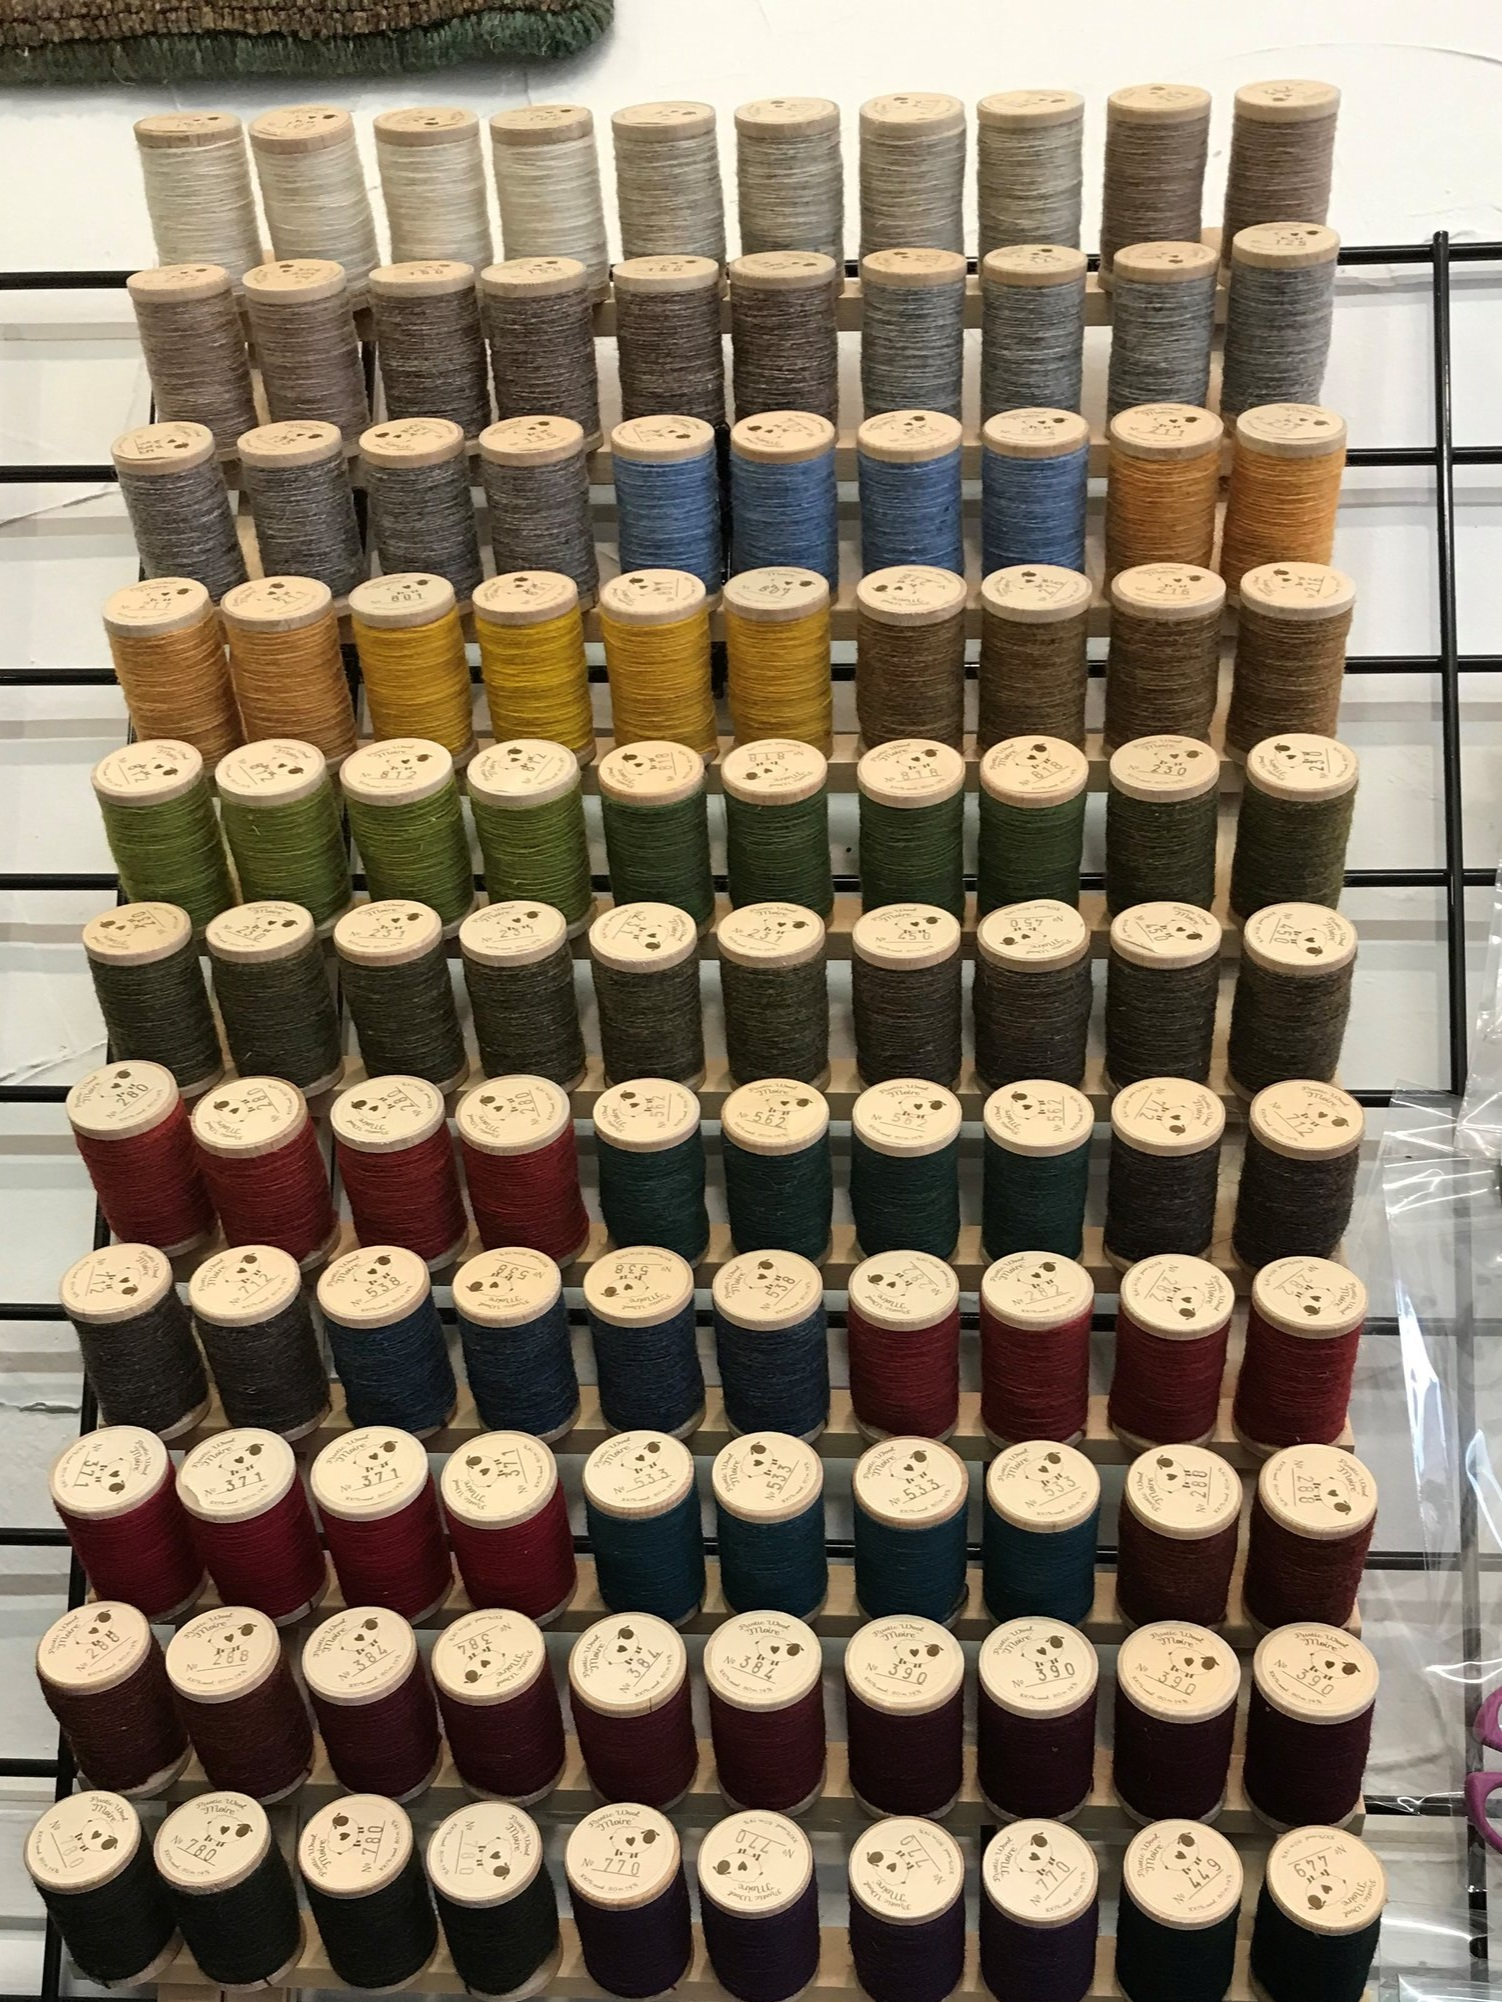 For a muted, primitive style to your punch projects-use Rustic Moire threads. - $5.25 in Studio